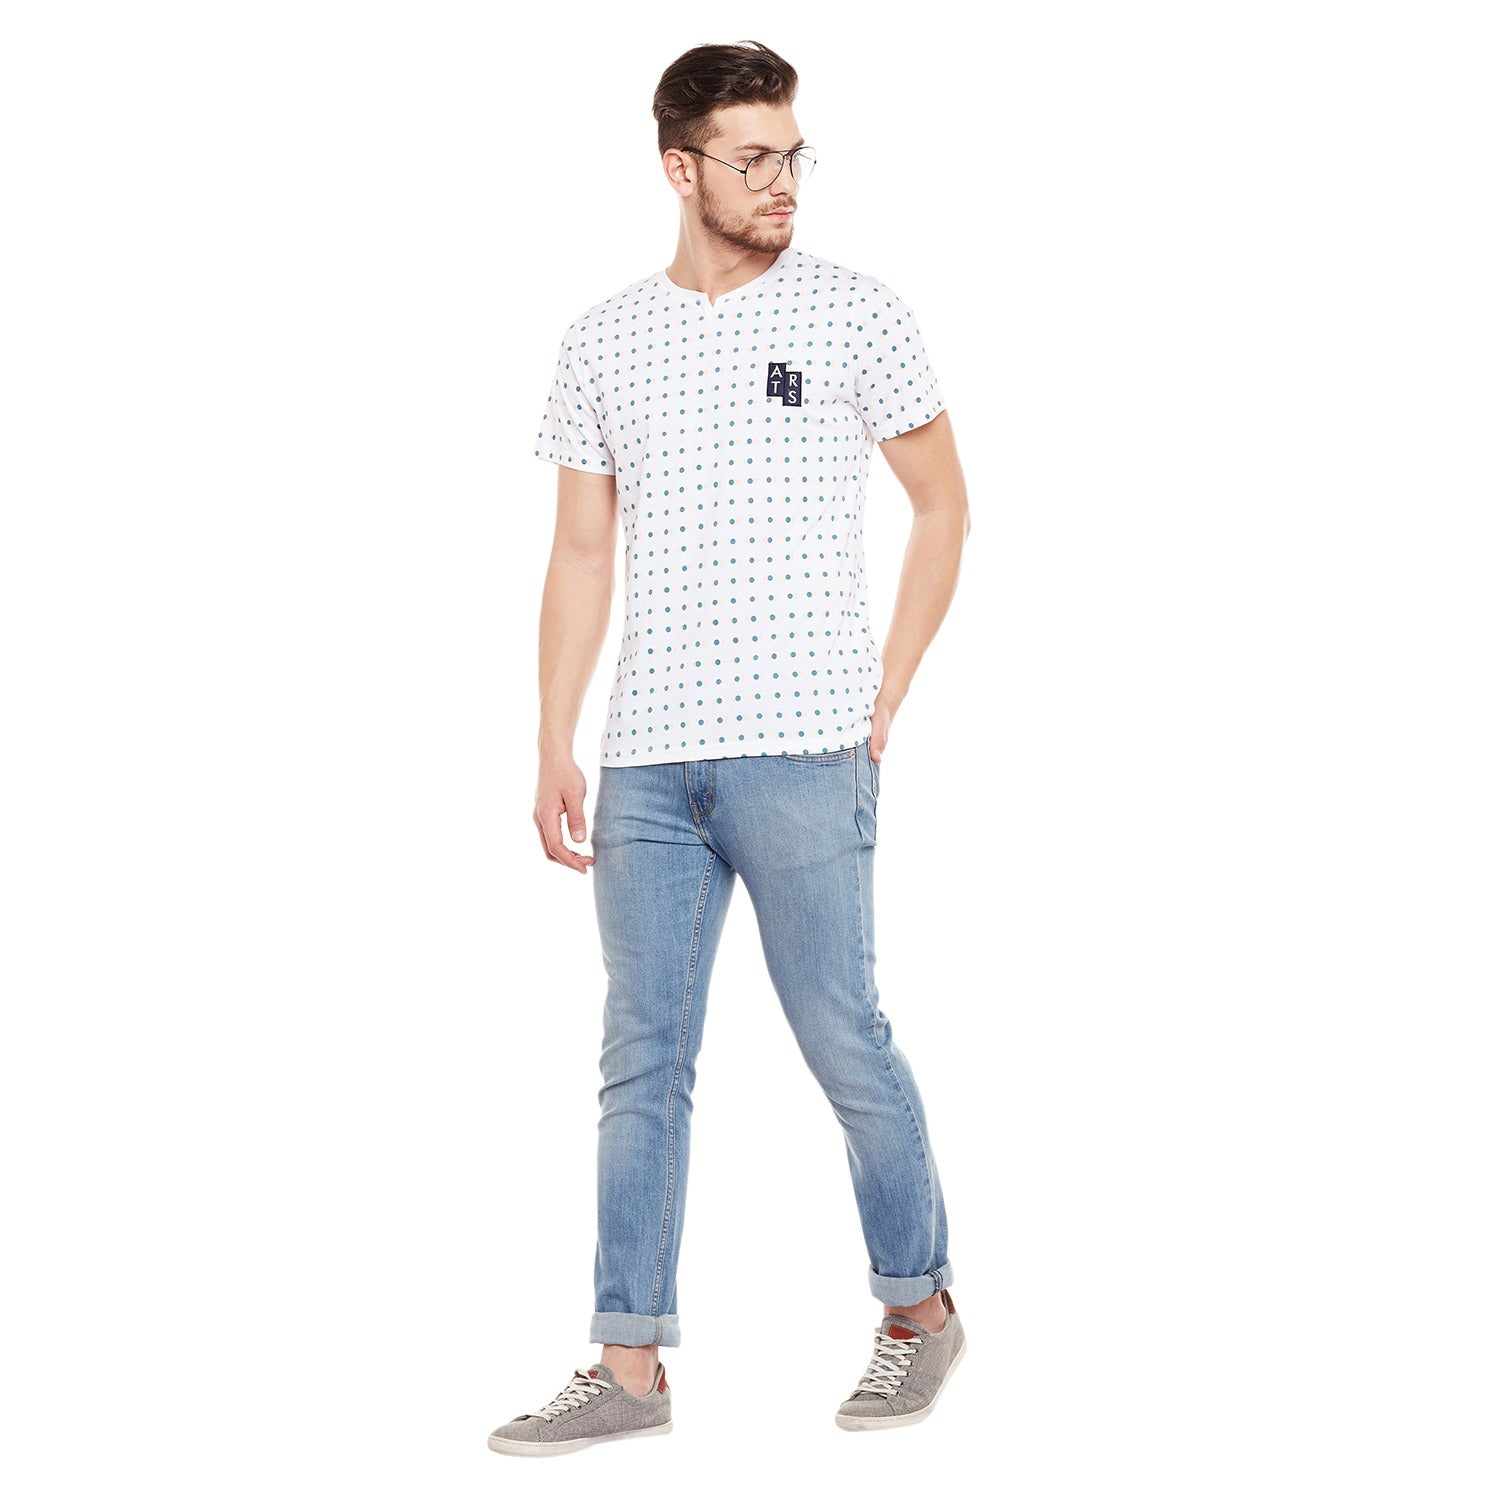 Atorse Grey Striper Long Line T-Shirt With Regular Fit